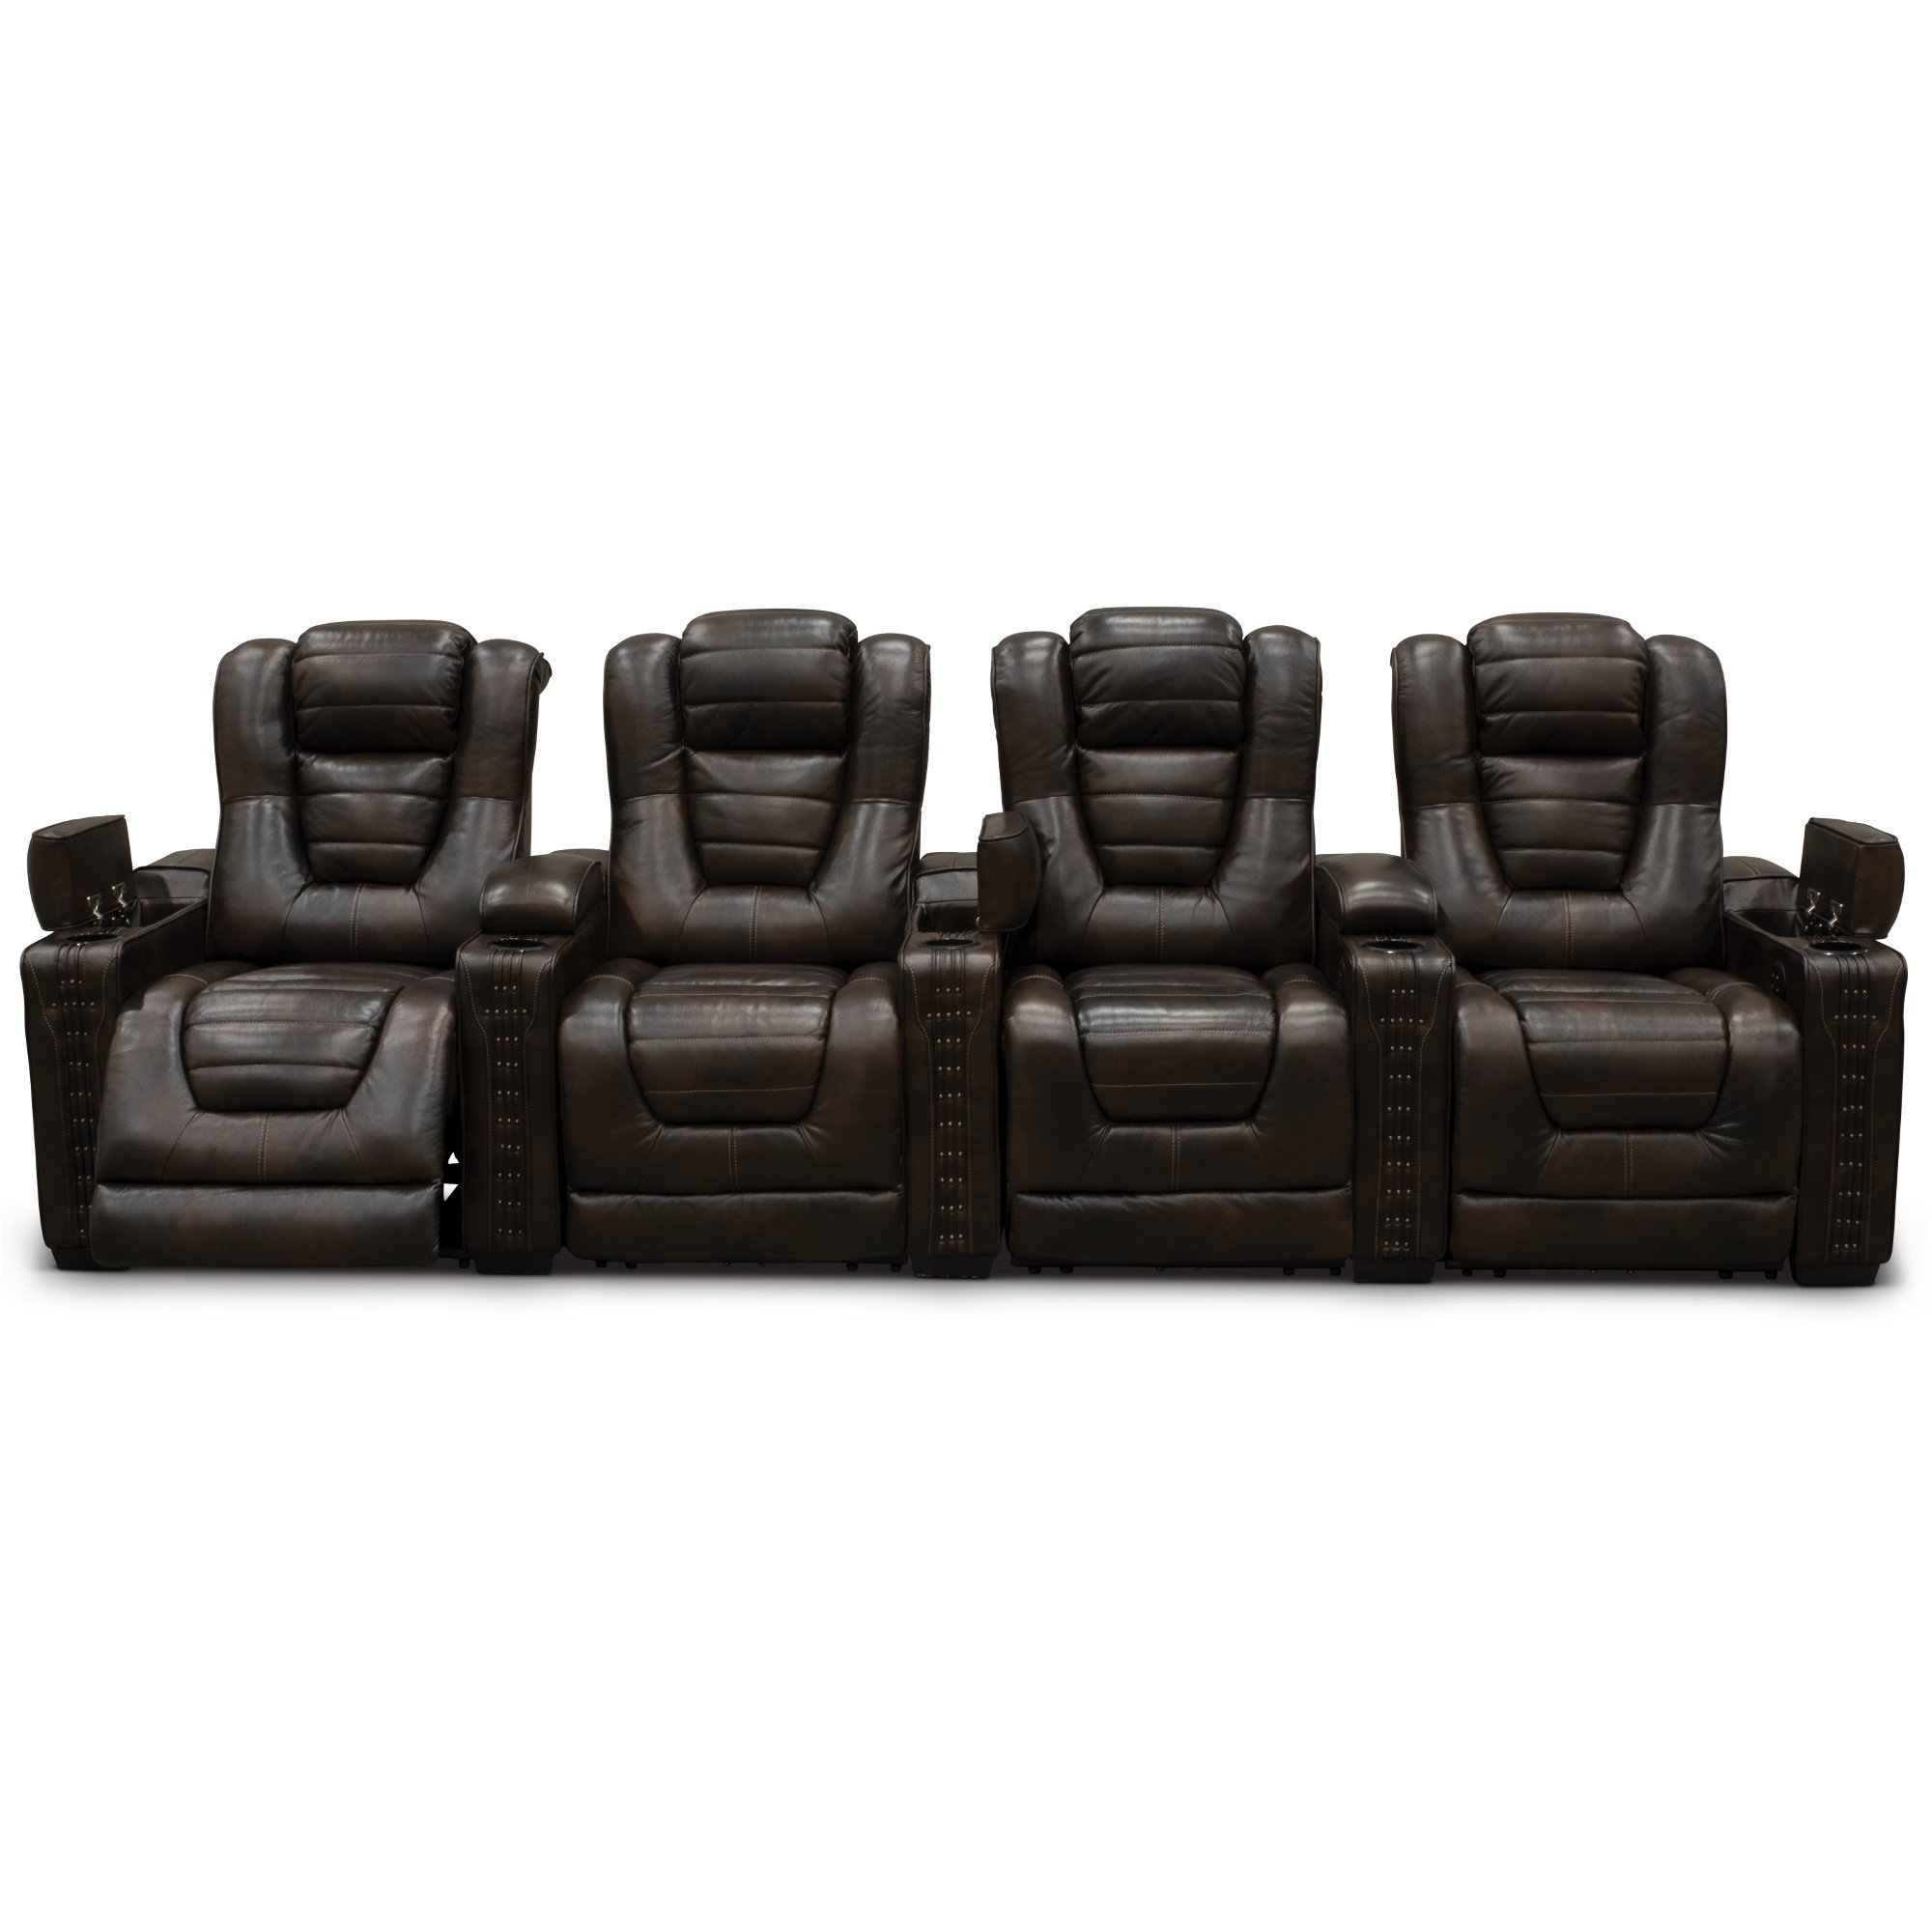 brown leather match 4 piece power home theater seating big chief